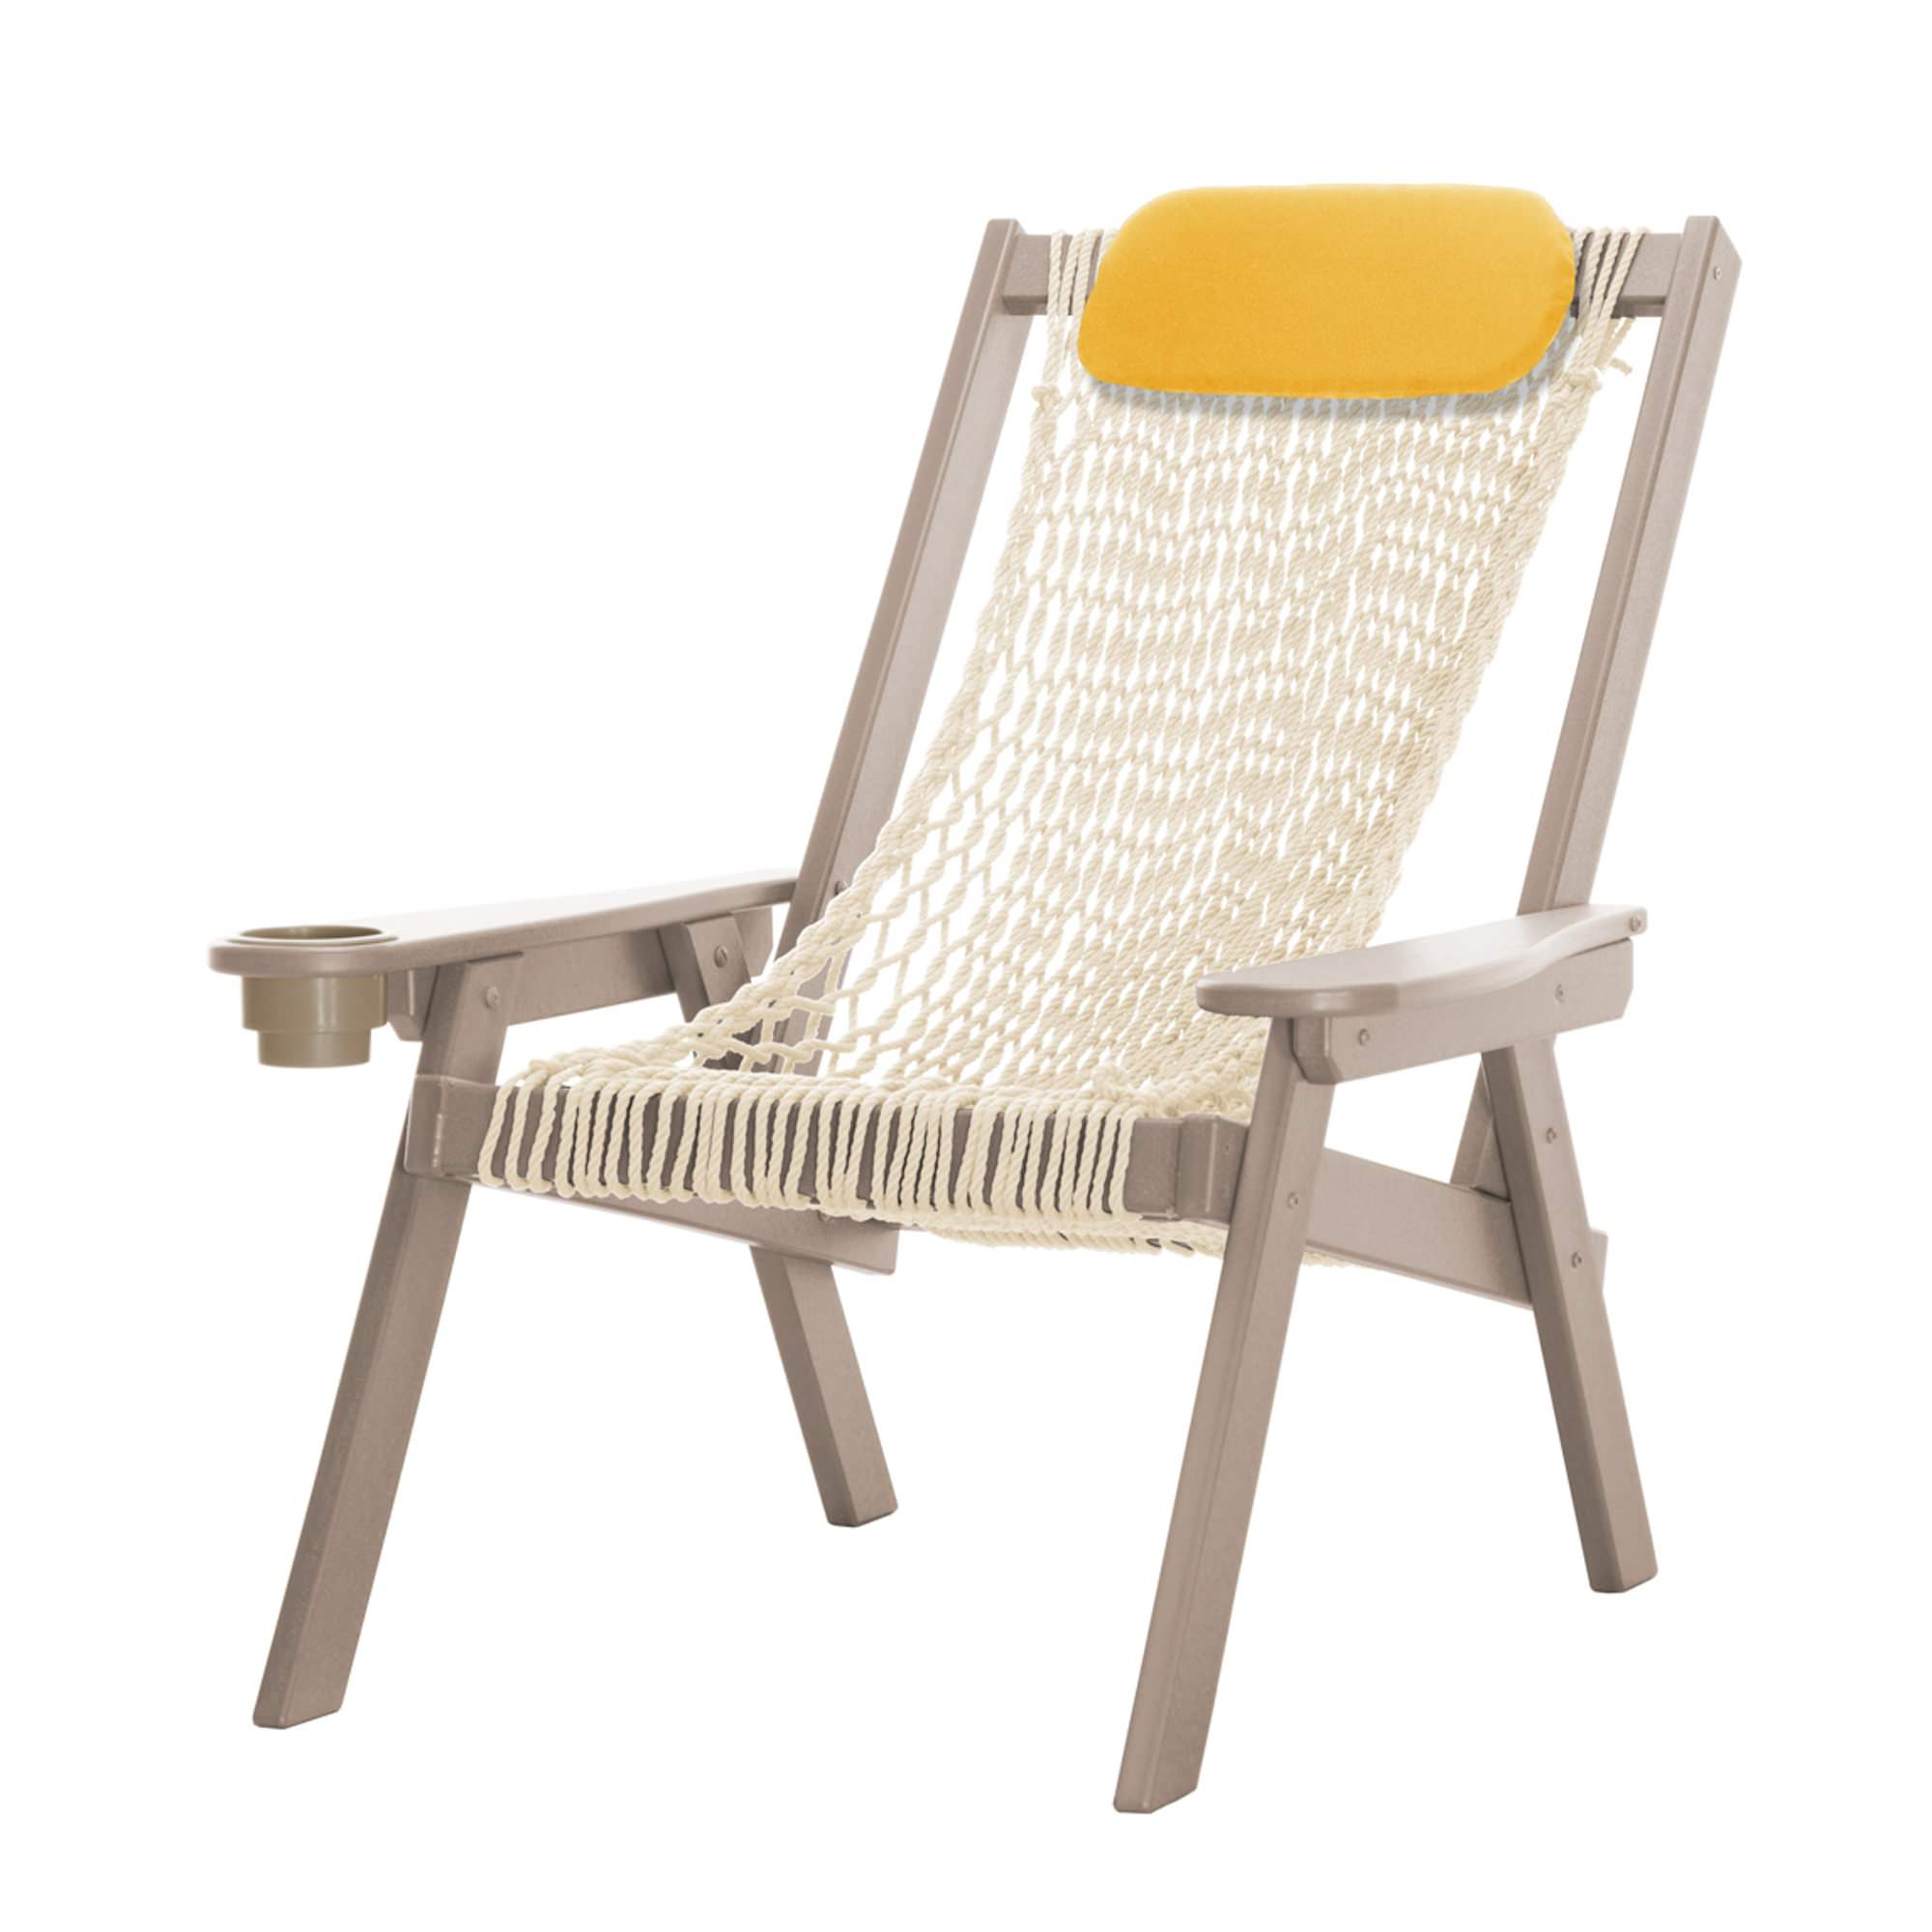 Coastal Rope Chair Instructions